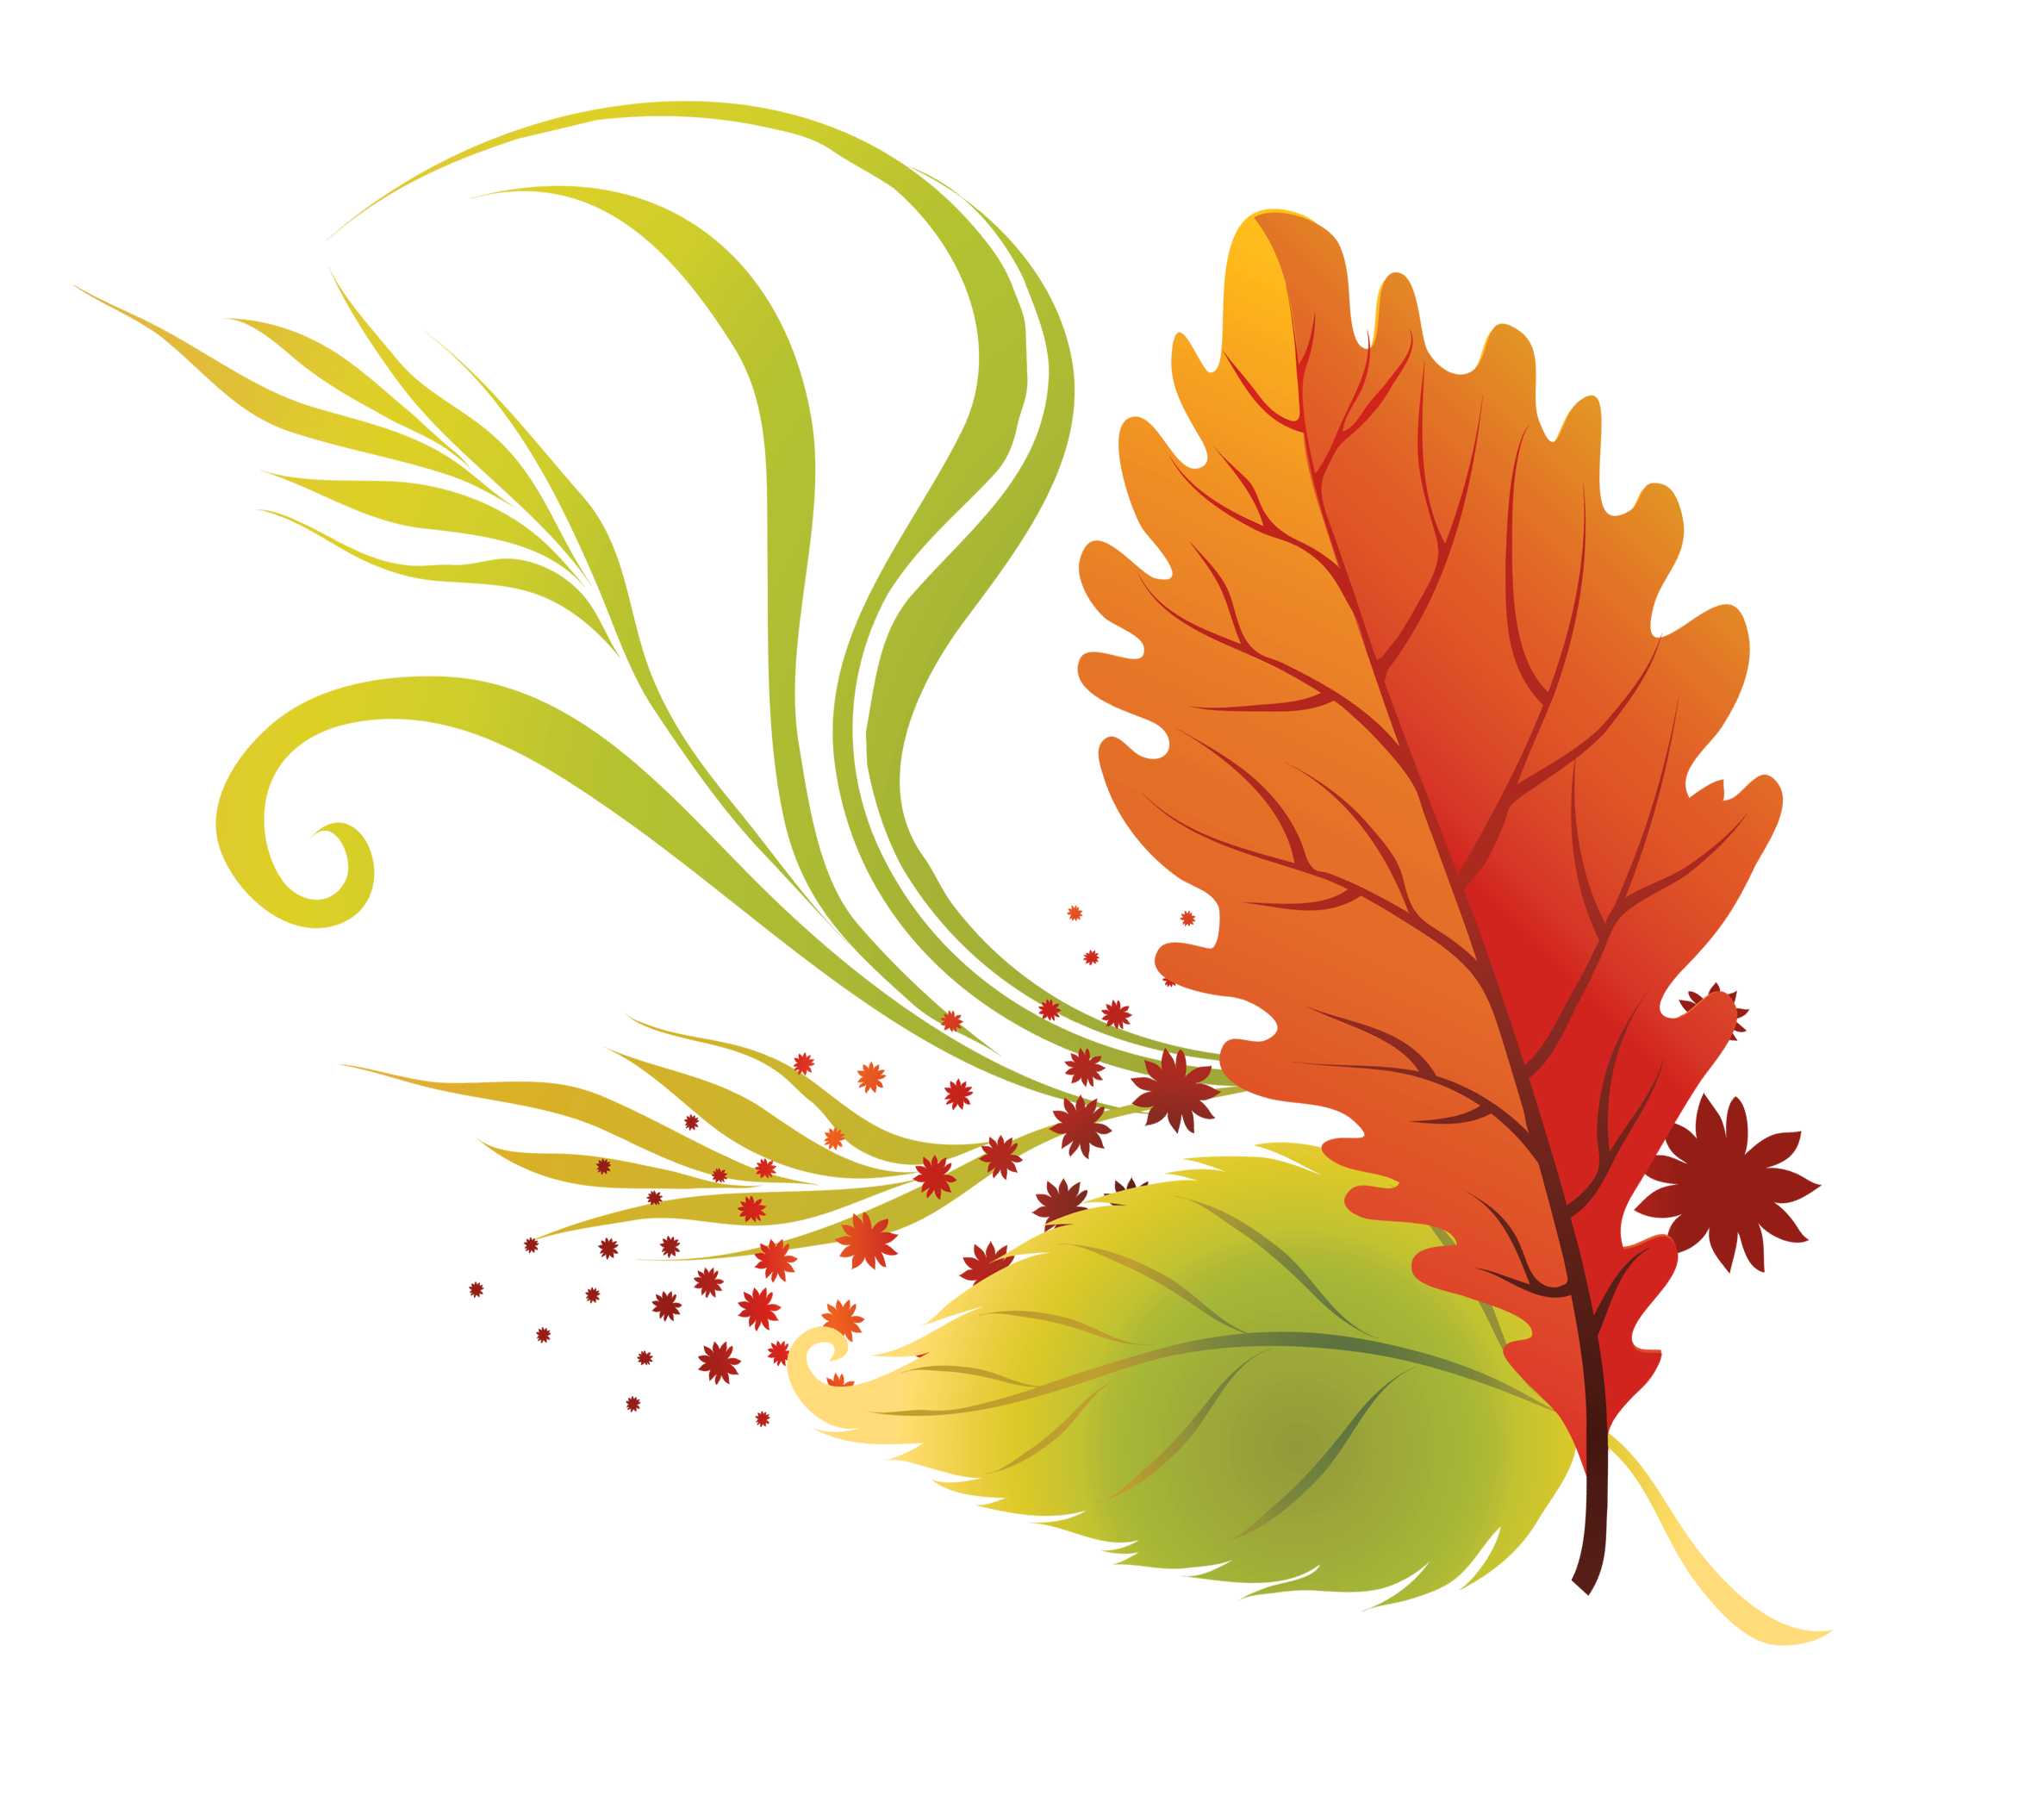 Fall leaves clip art. Families clipart autumn